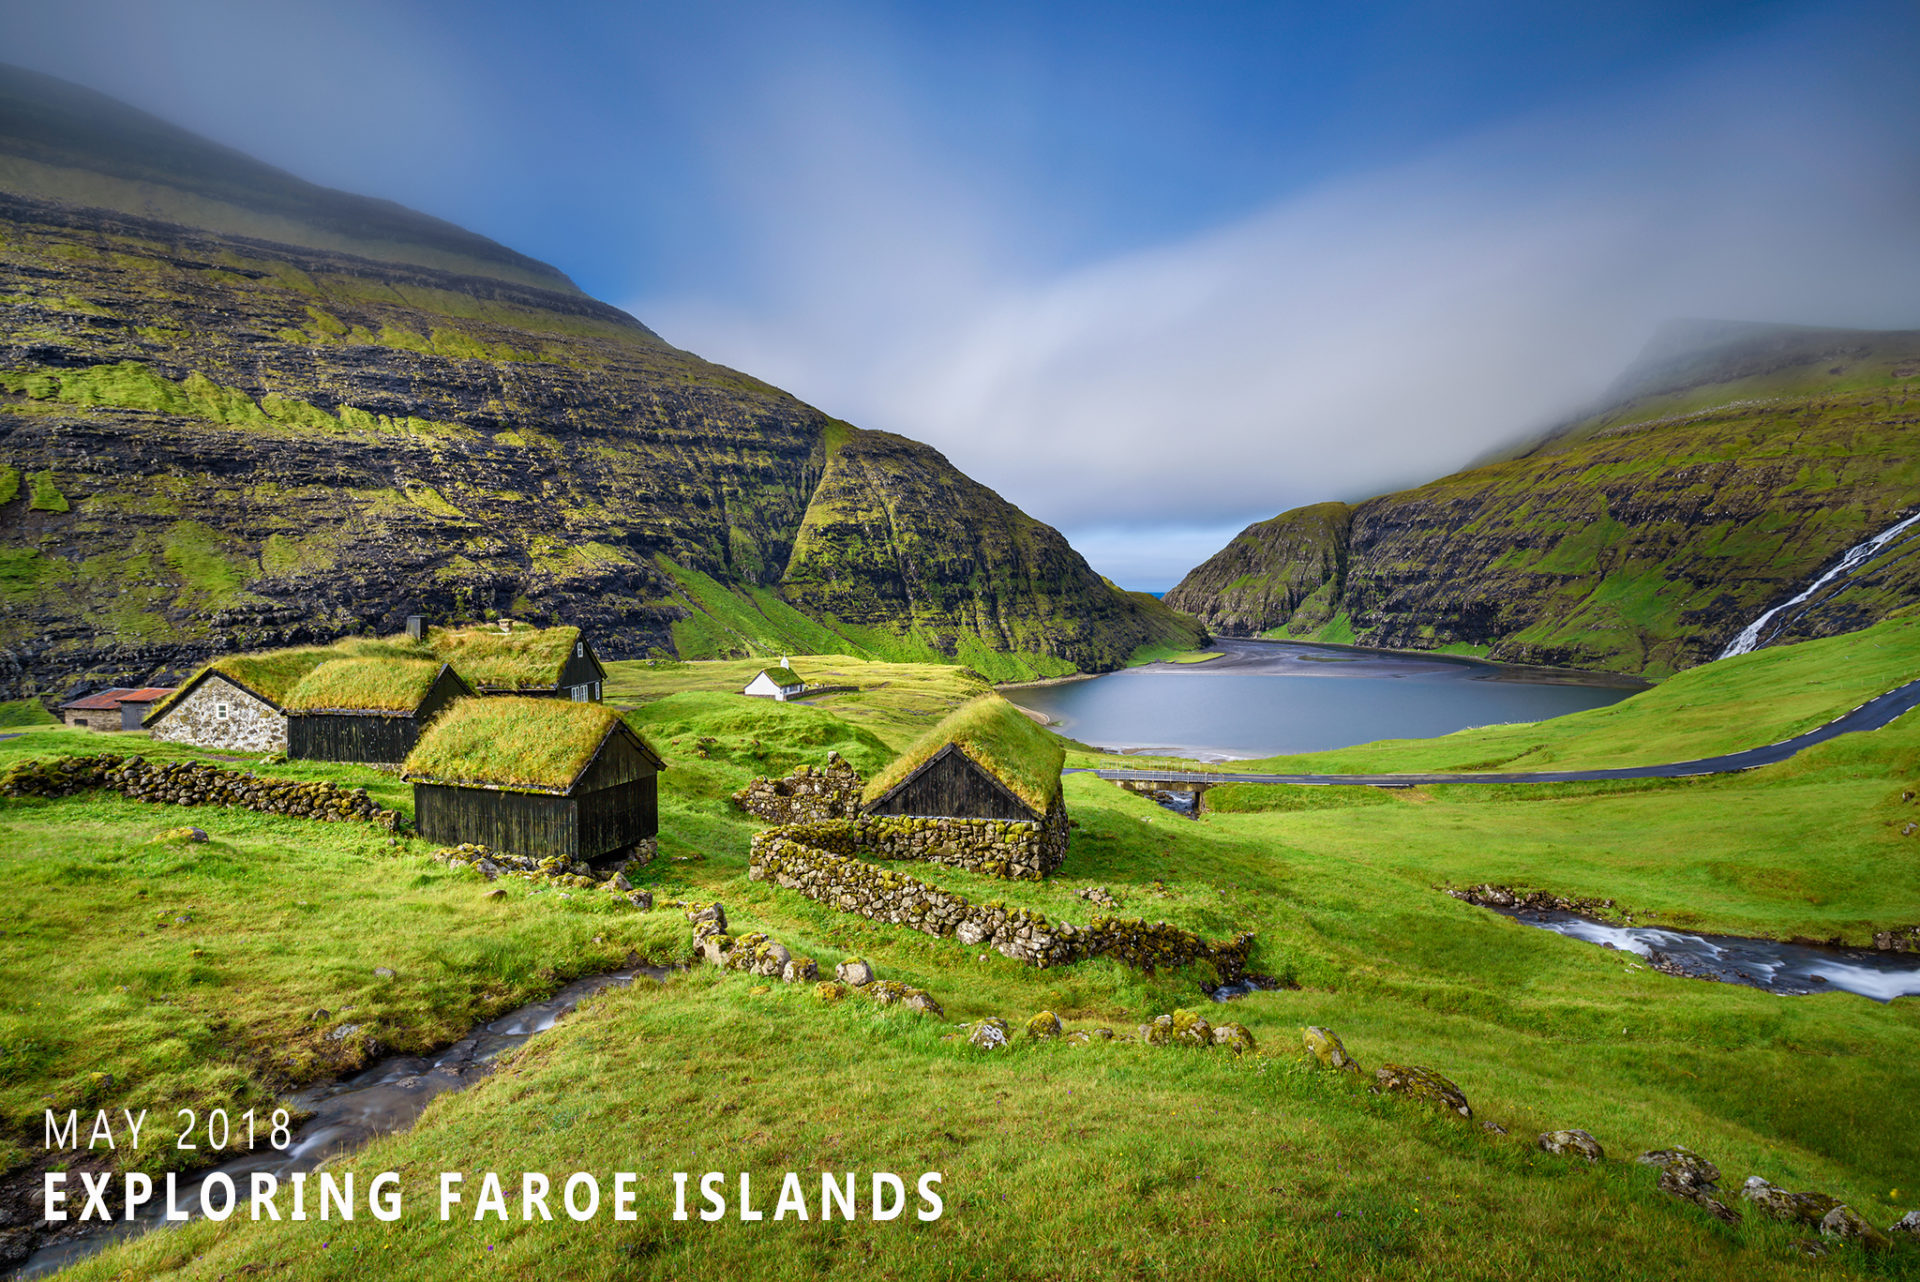 Faroe Islands, May 2018 // Îles Féroé, Mai 2018